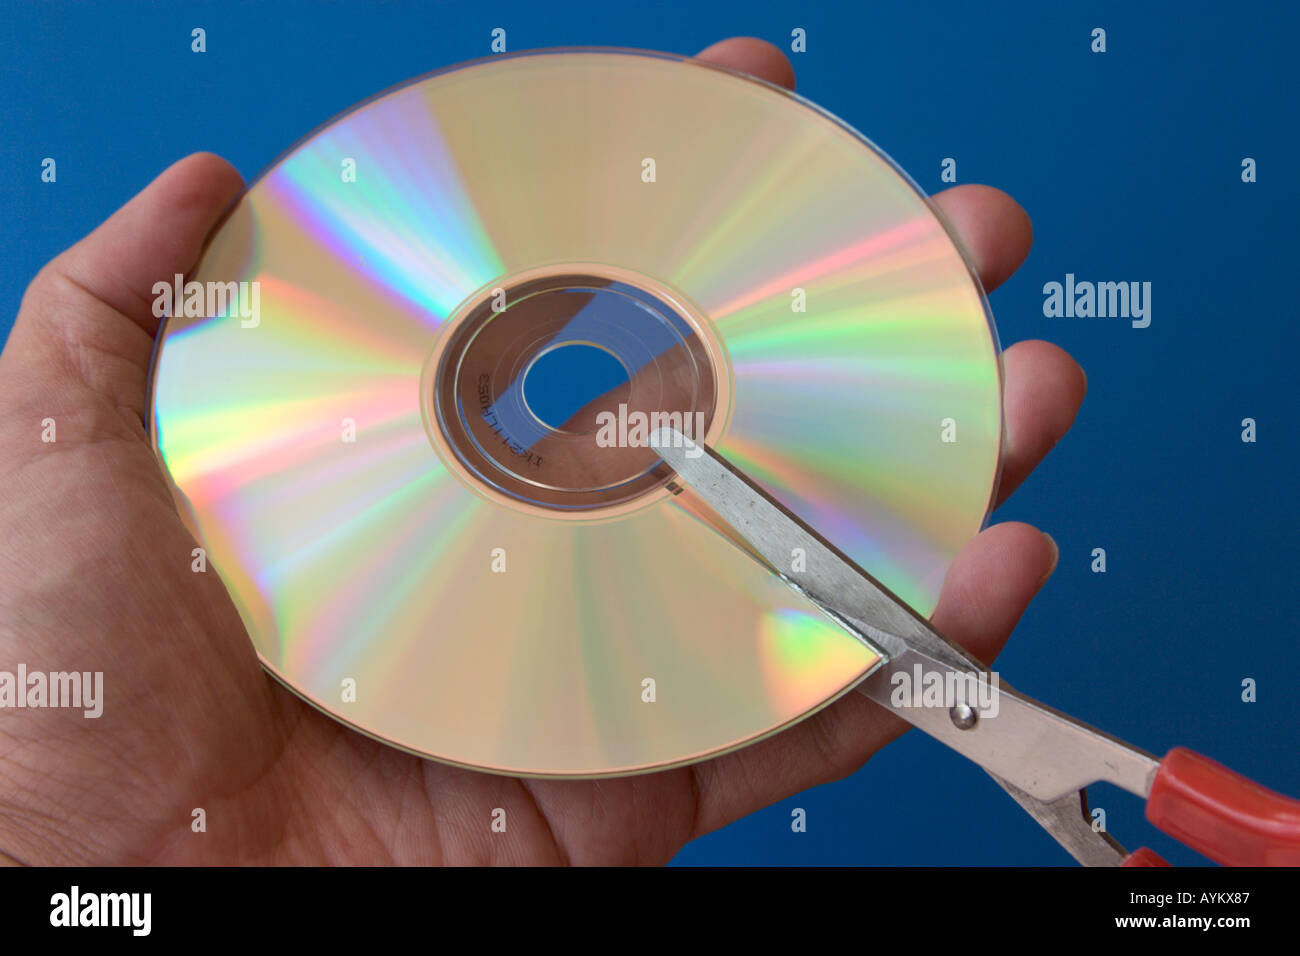 scissors cutting a cd-rom concept data security archiving destroy privacy secrecy information - Stock Image